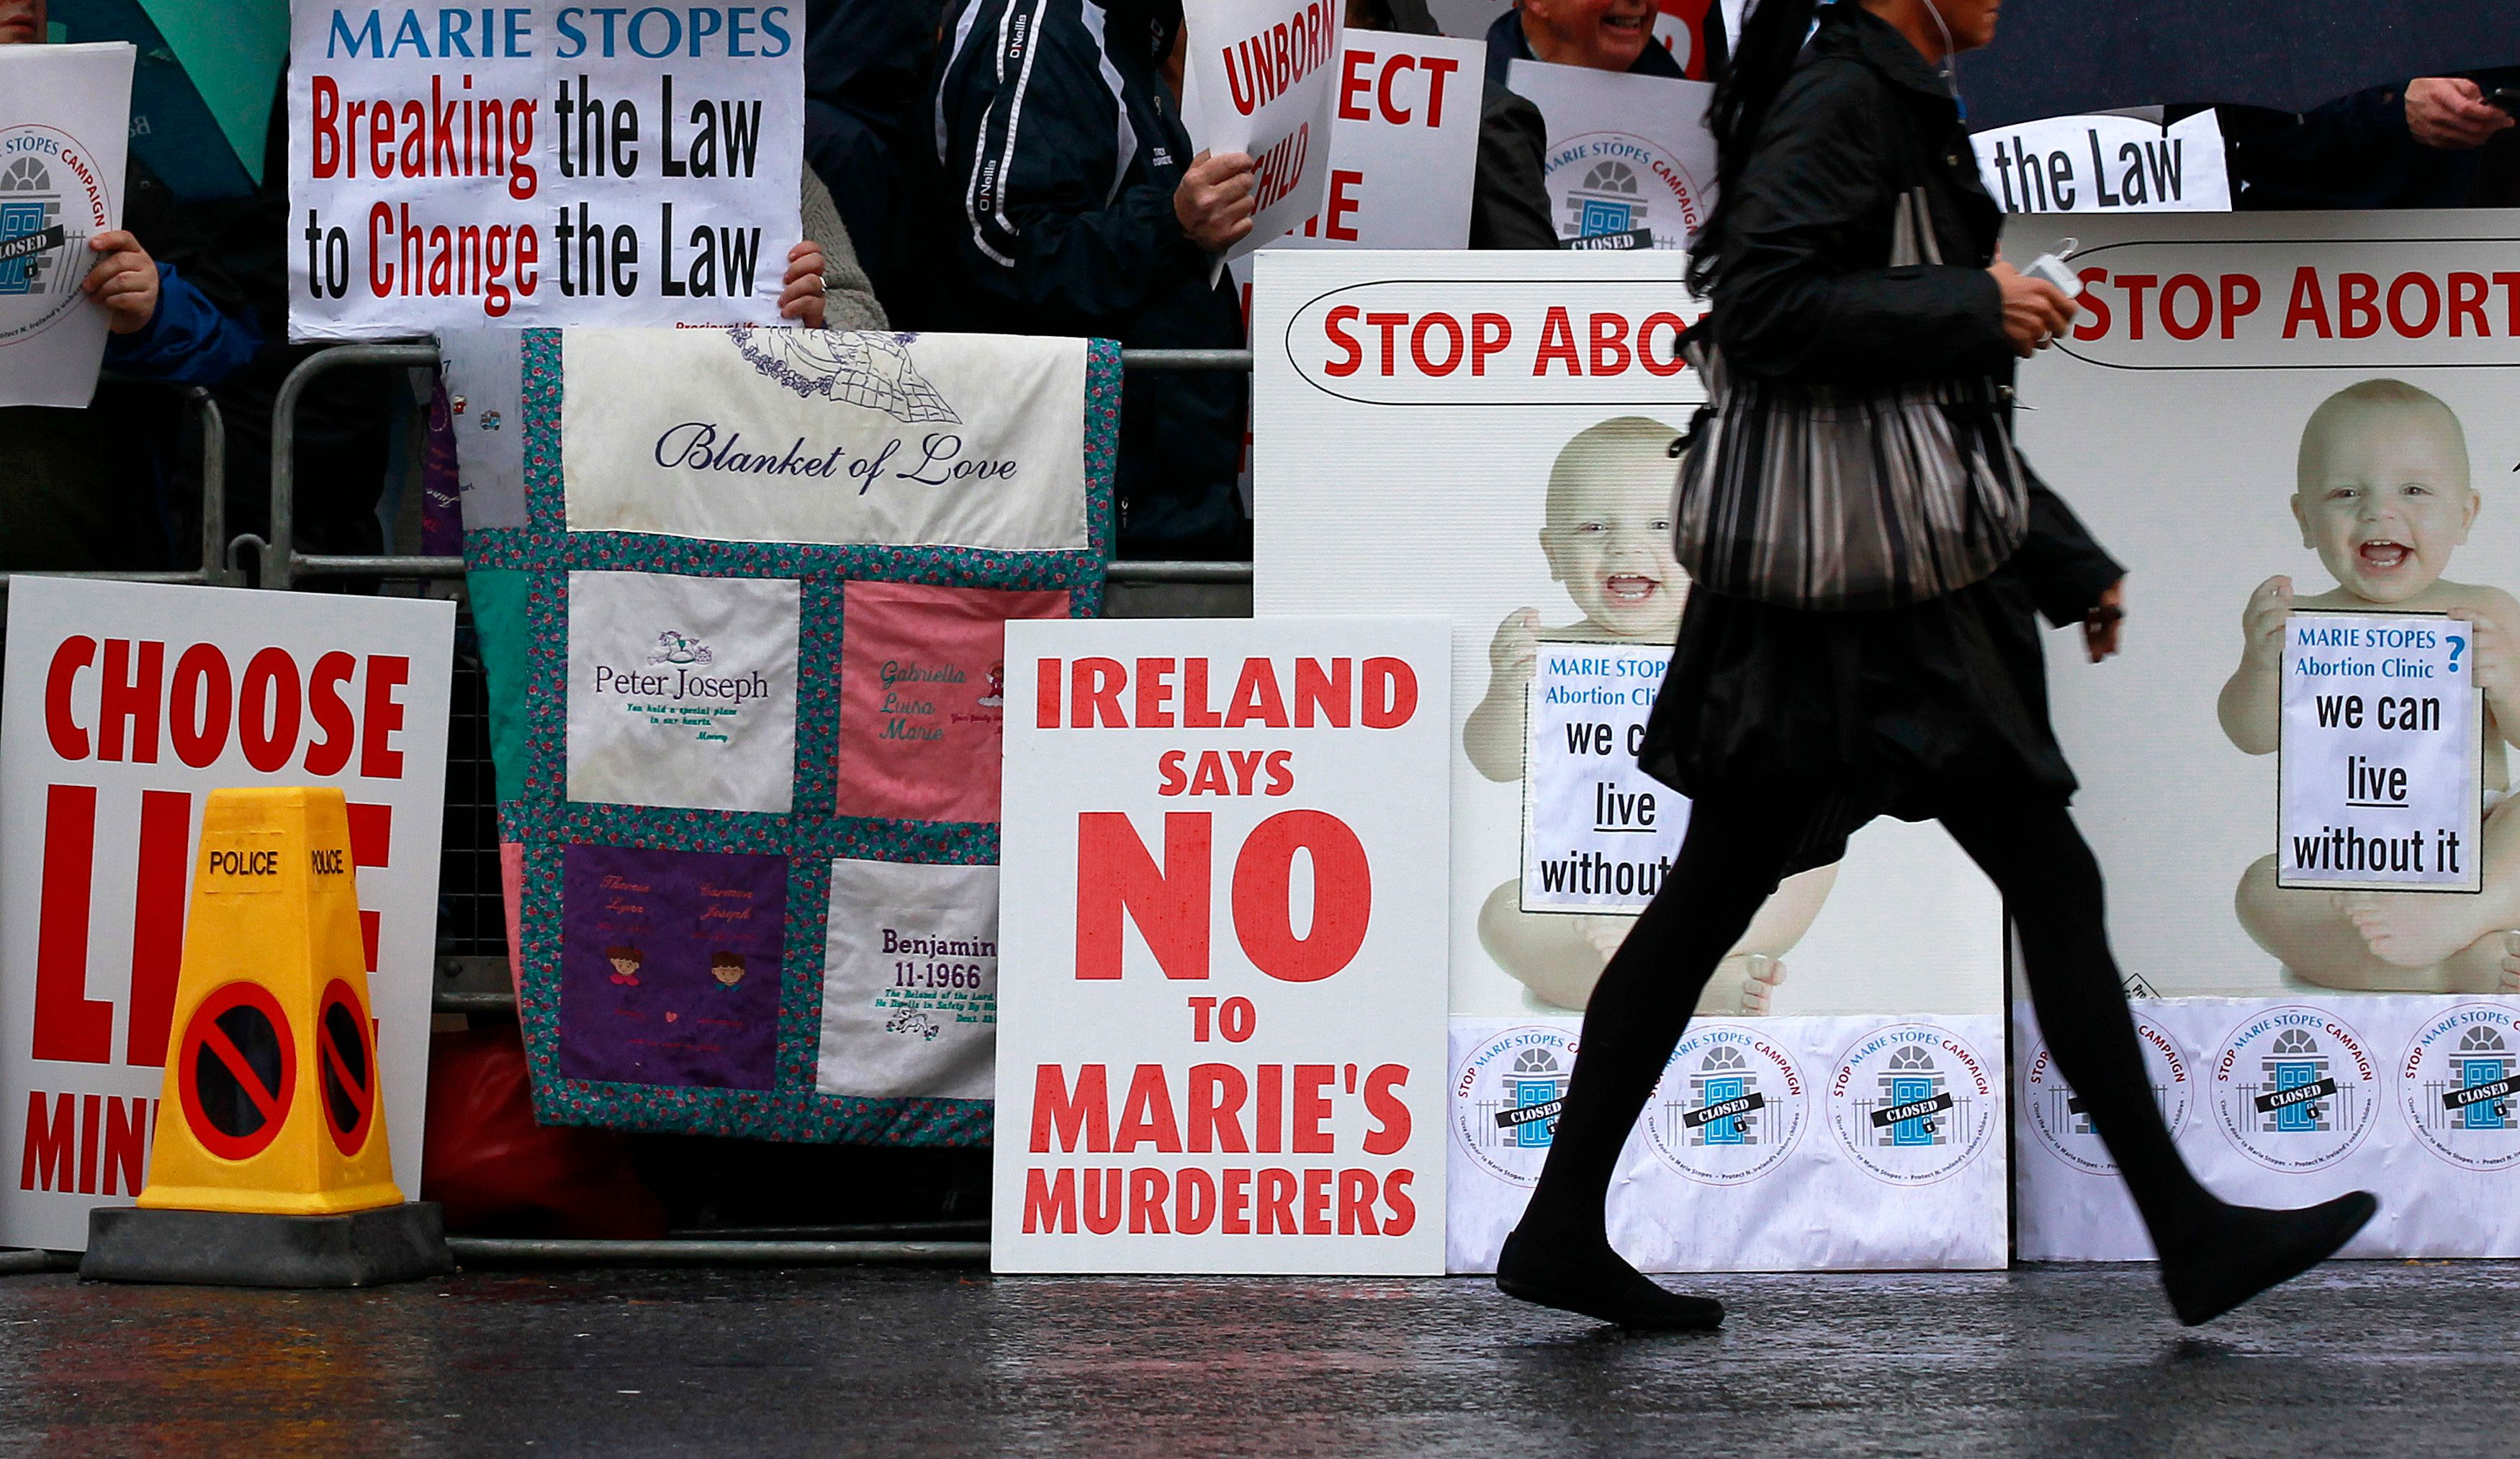 Scotland confirms NI women abortion move